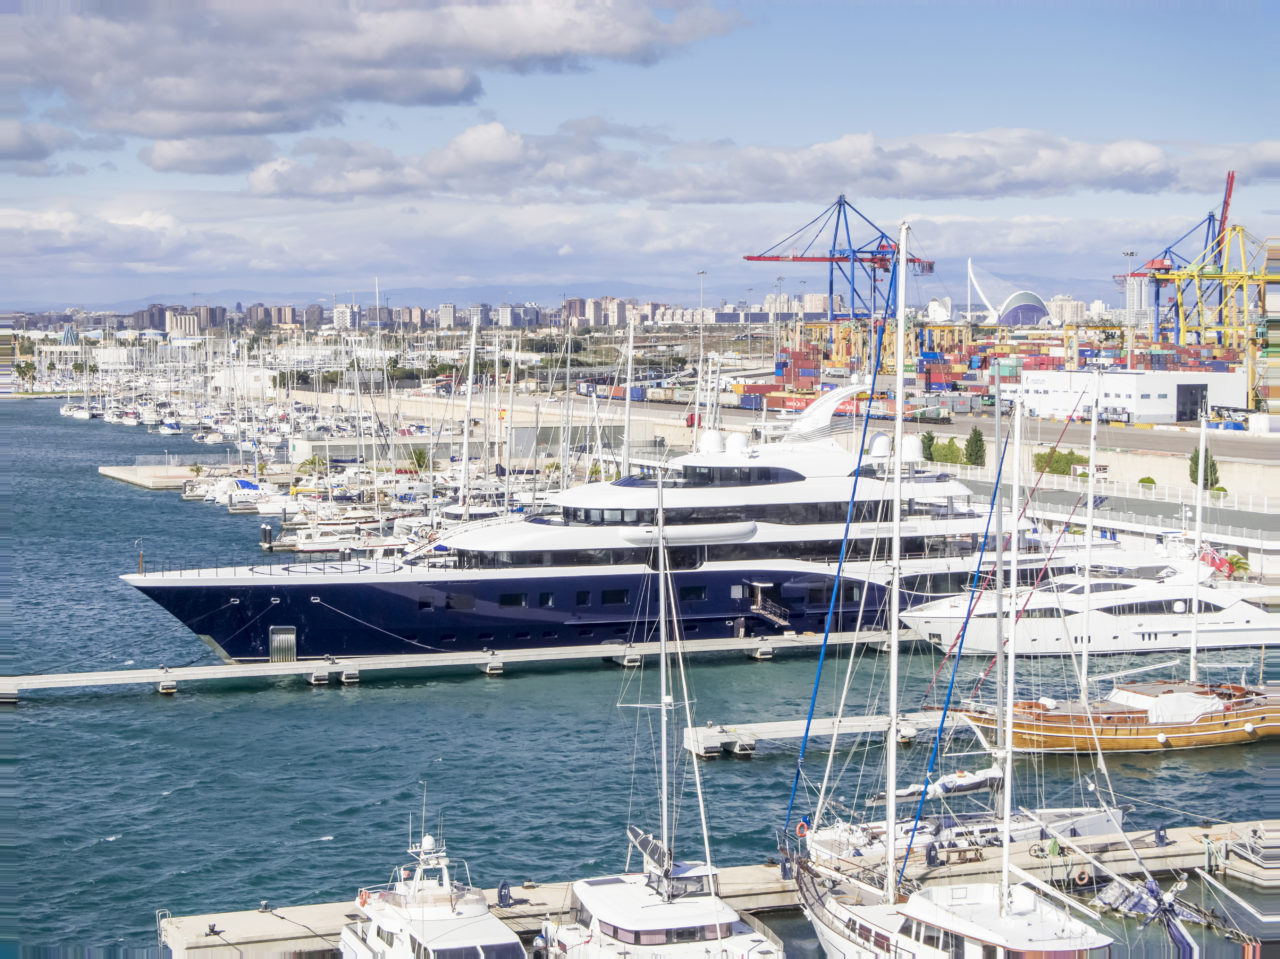 Valencia Mar – Superyacht Marina Spain 2